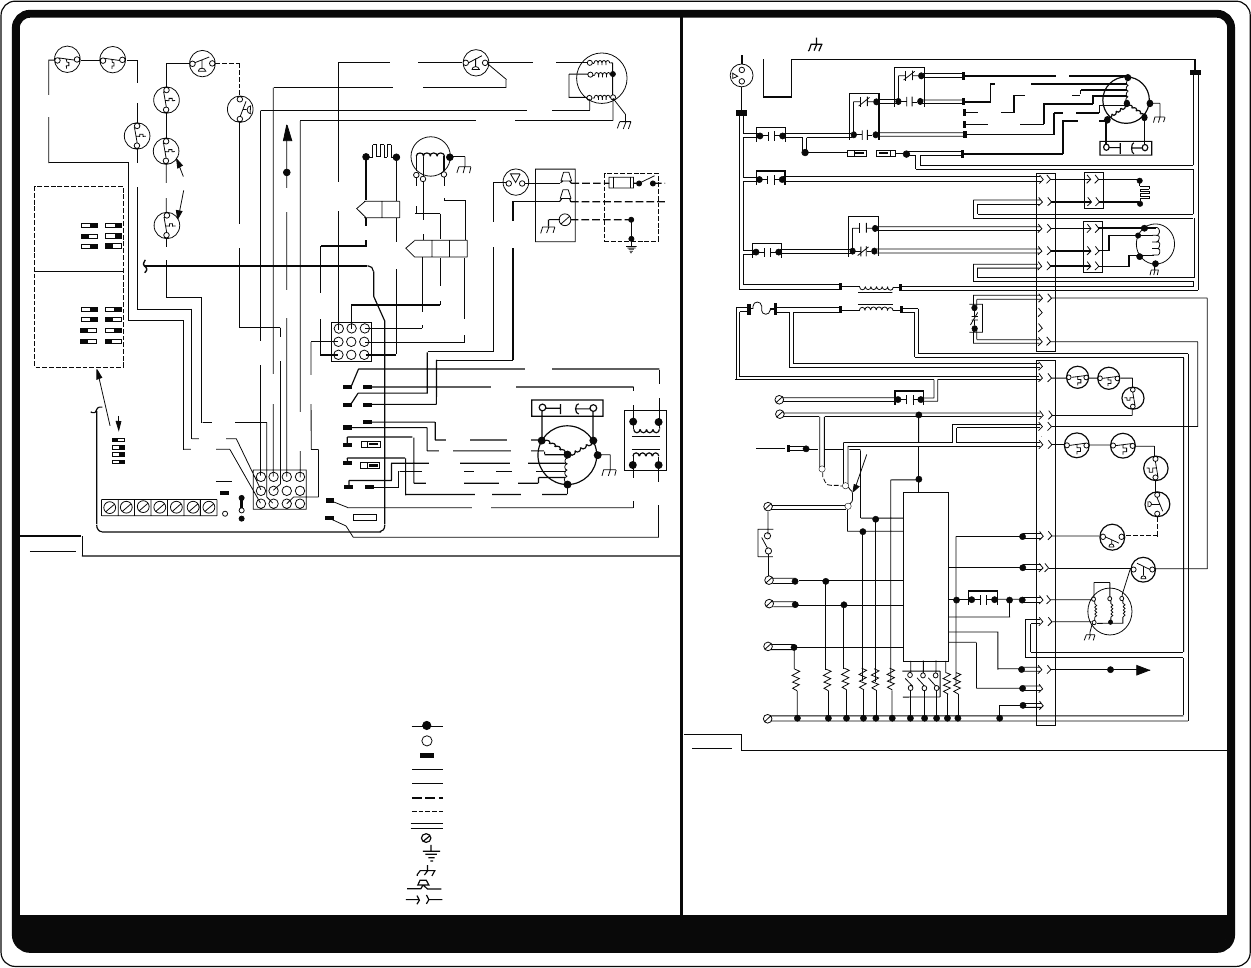 c2b73d22 c45f 43df a574 b6e707ea0cc7 bg8 power flame wiring diagram power flame burners wiring diagrams honeywell pressure switch wiring diagram at gsmportal.co